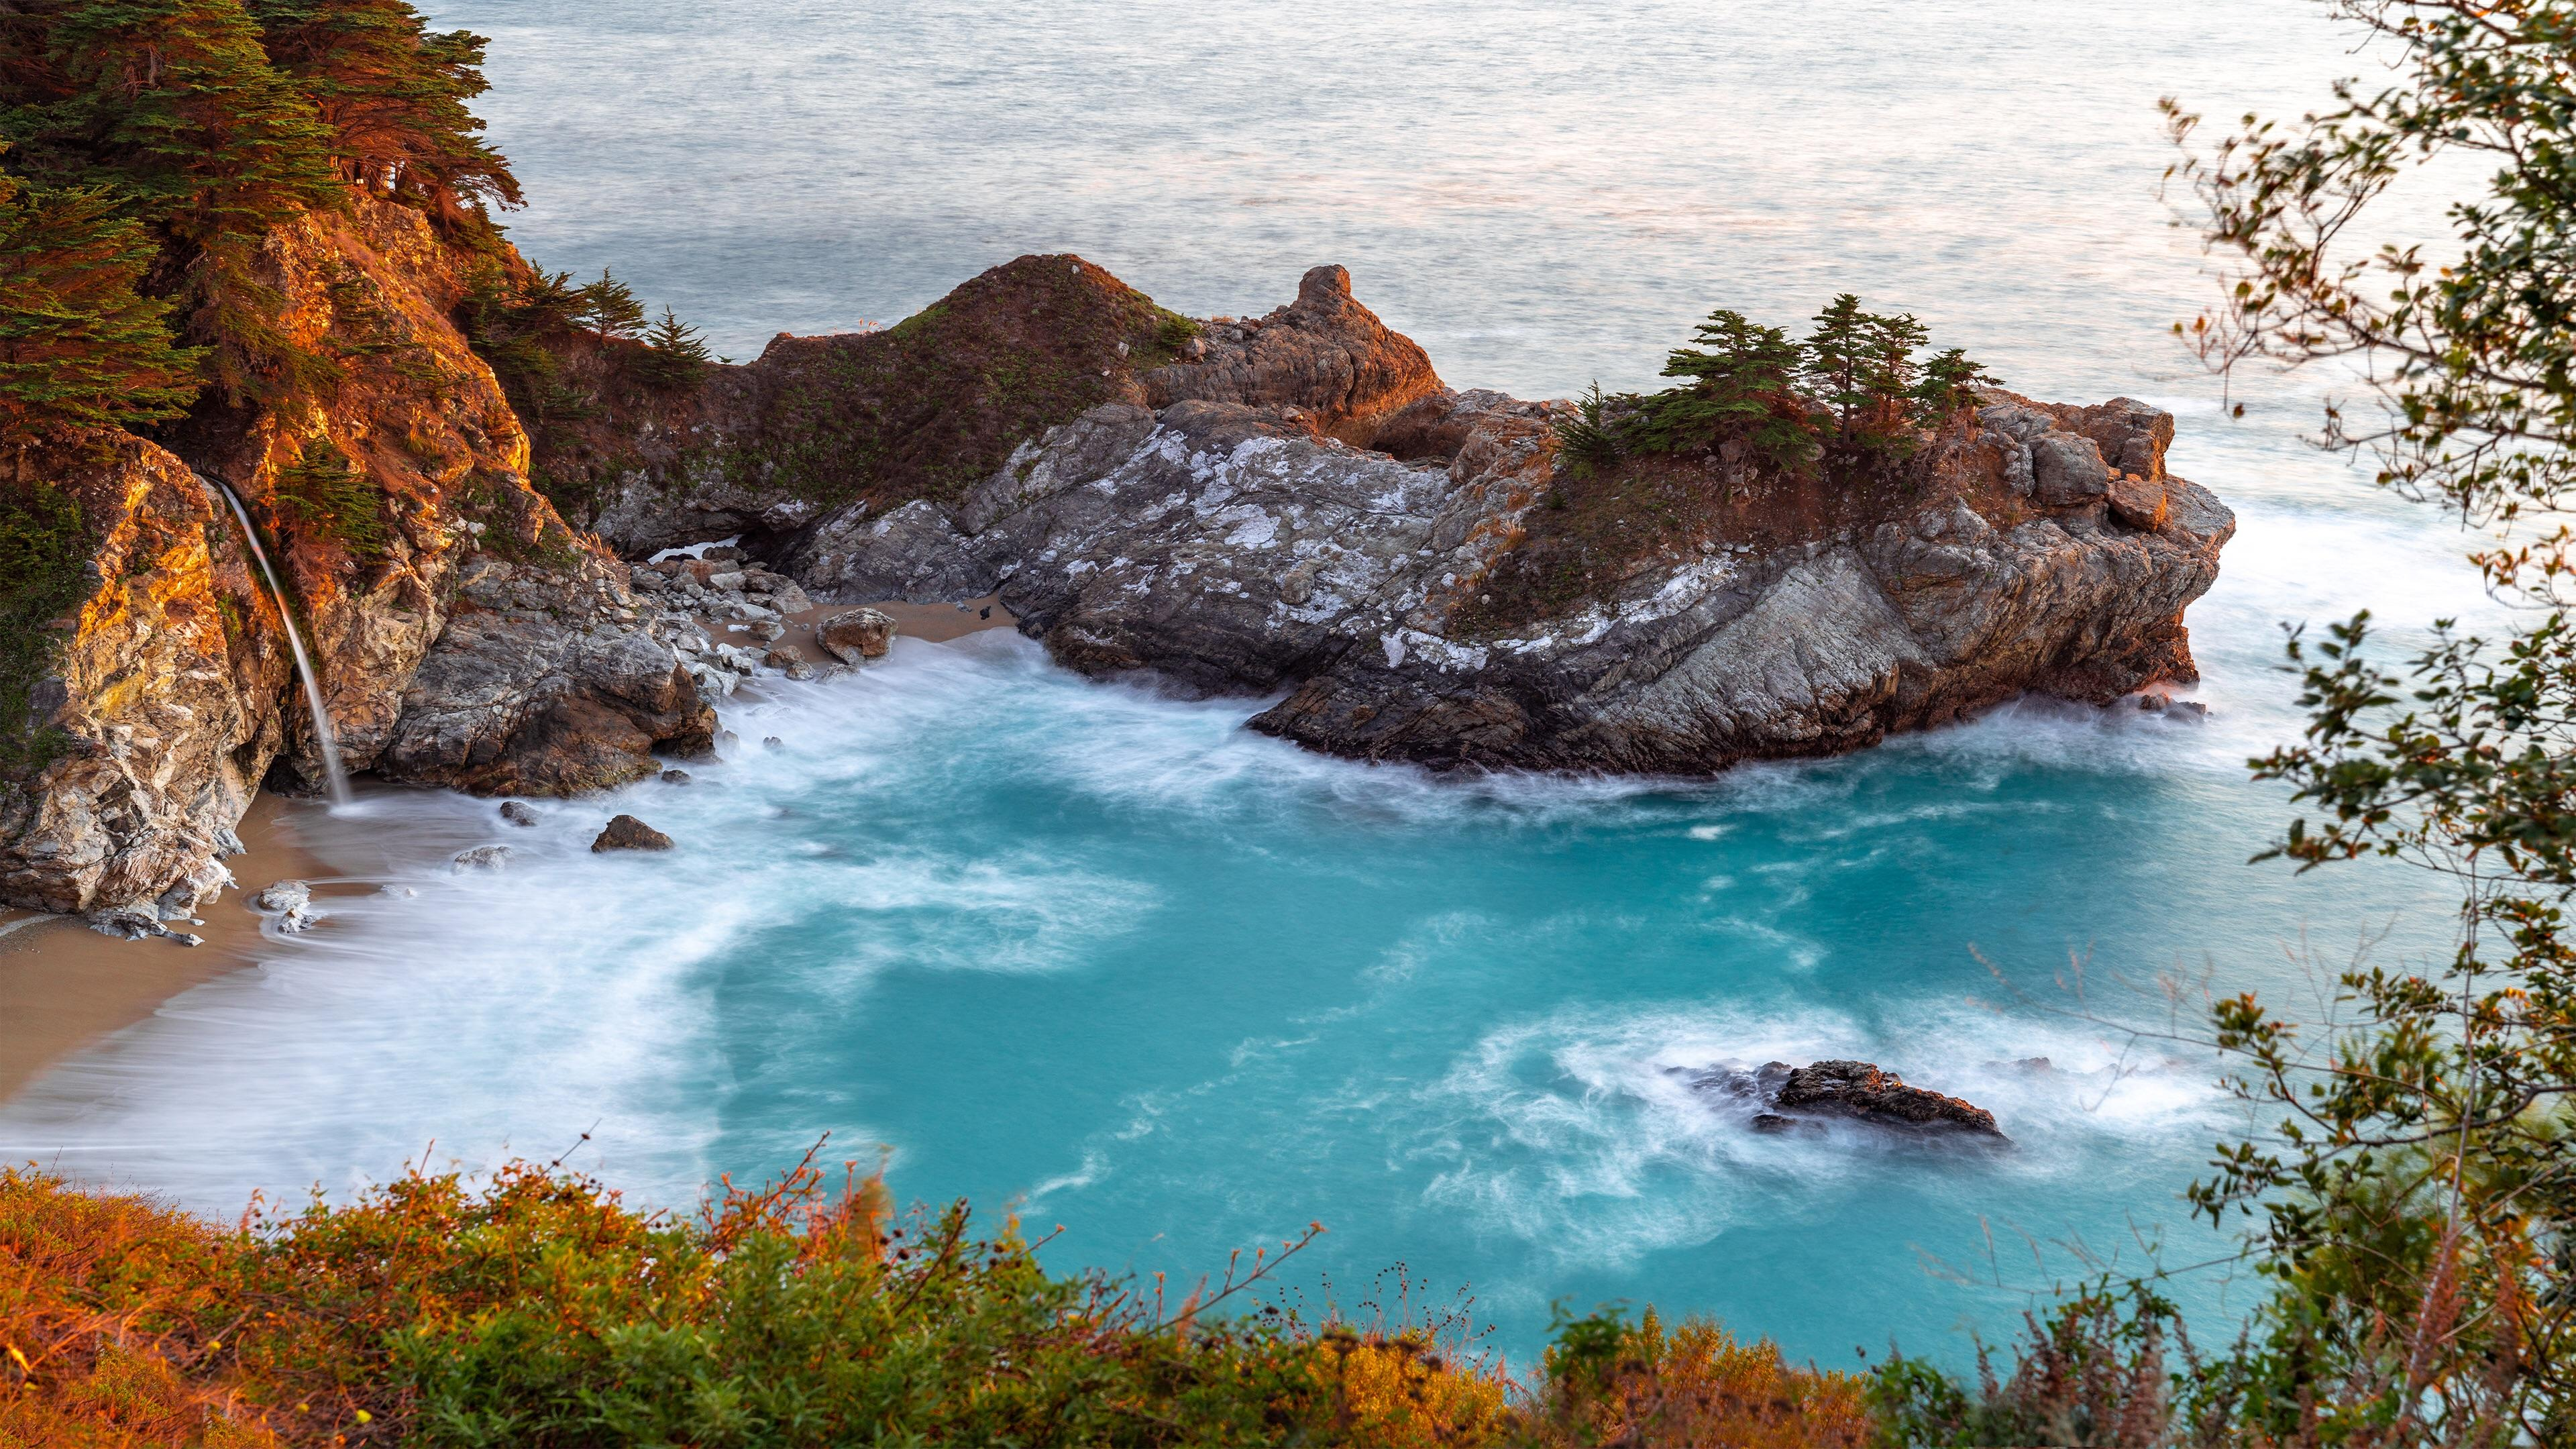 California 4k wallpapers for your desktop or mobile screen free and easy to download - 4k wallpaper download ...